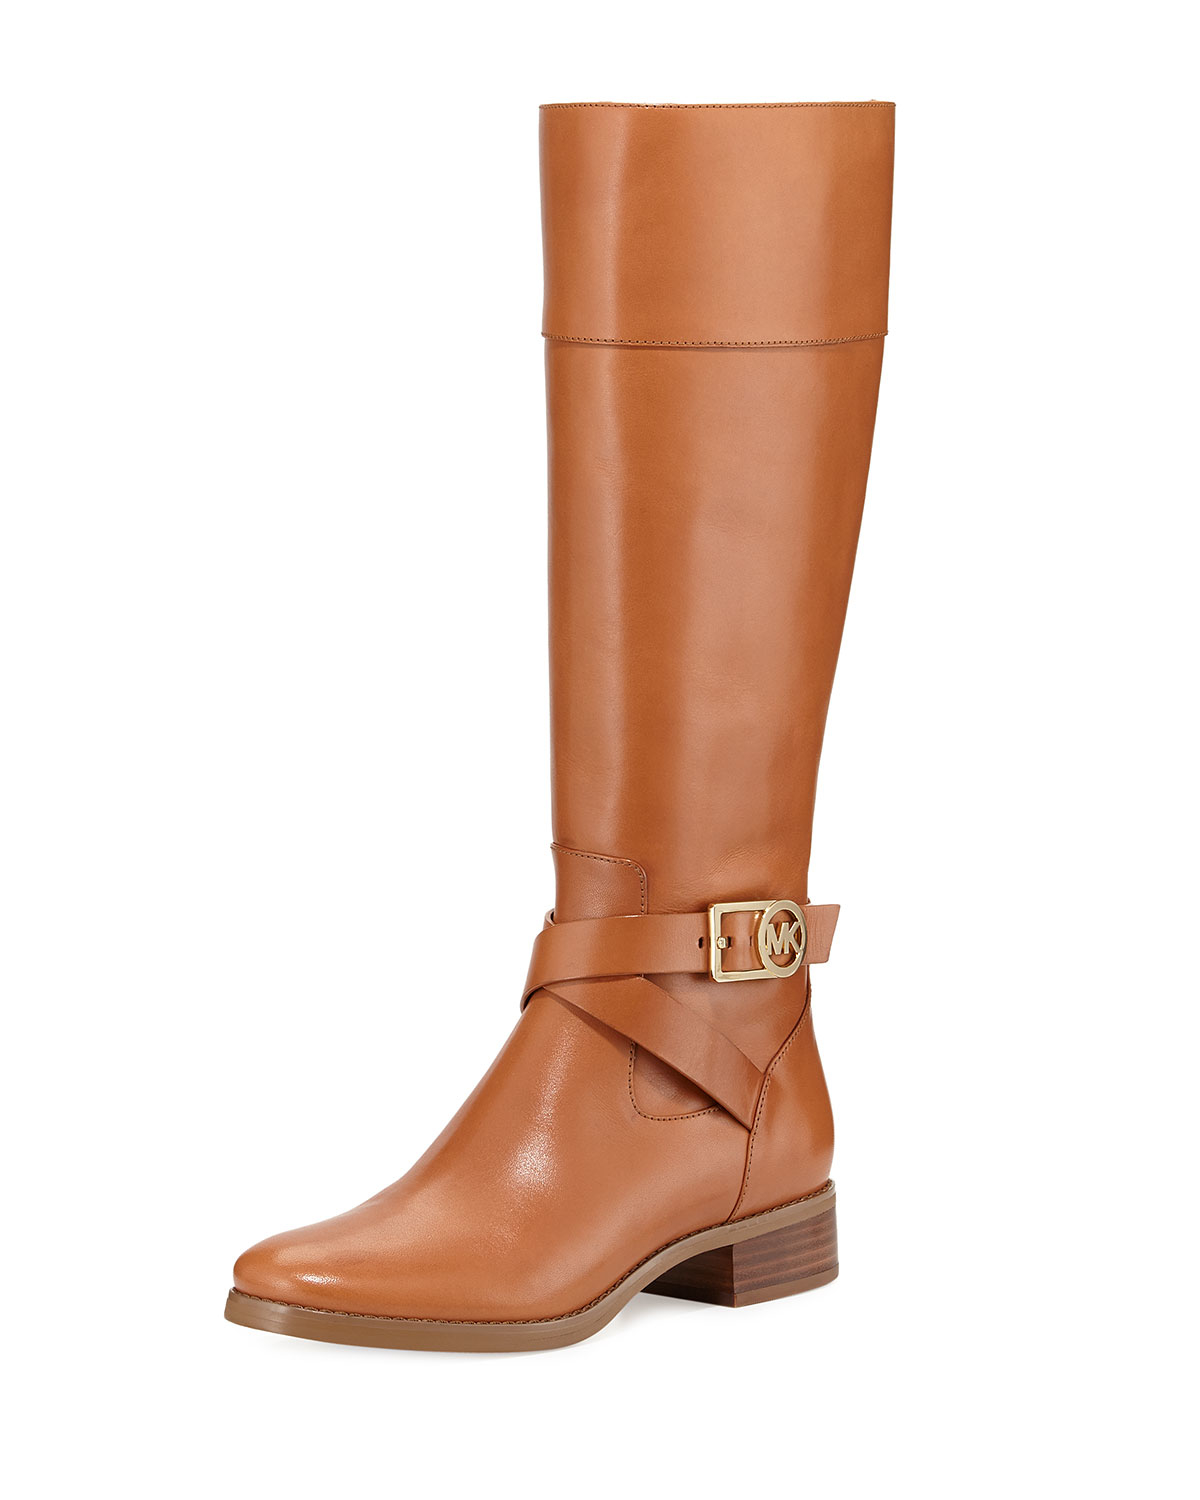 Michael michael kors Bryce Leather Riding Boots in Brown | Lyst